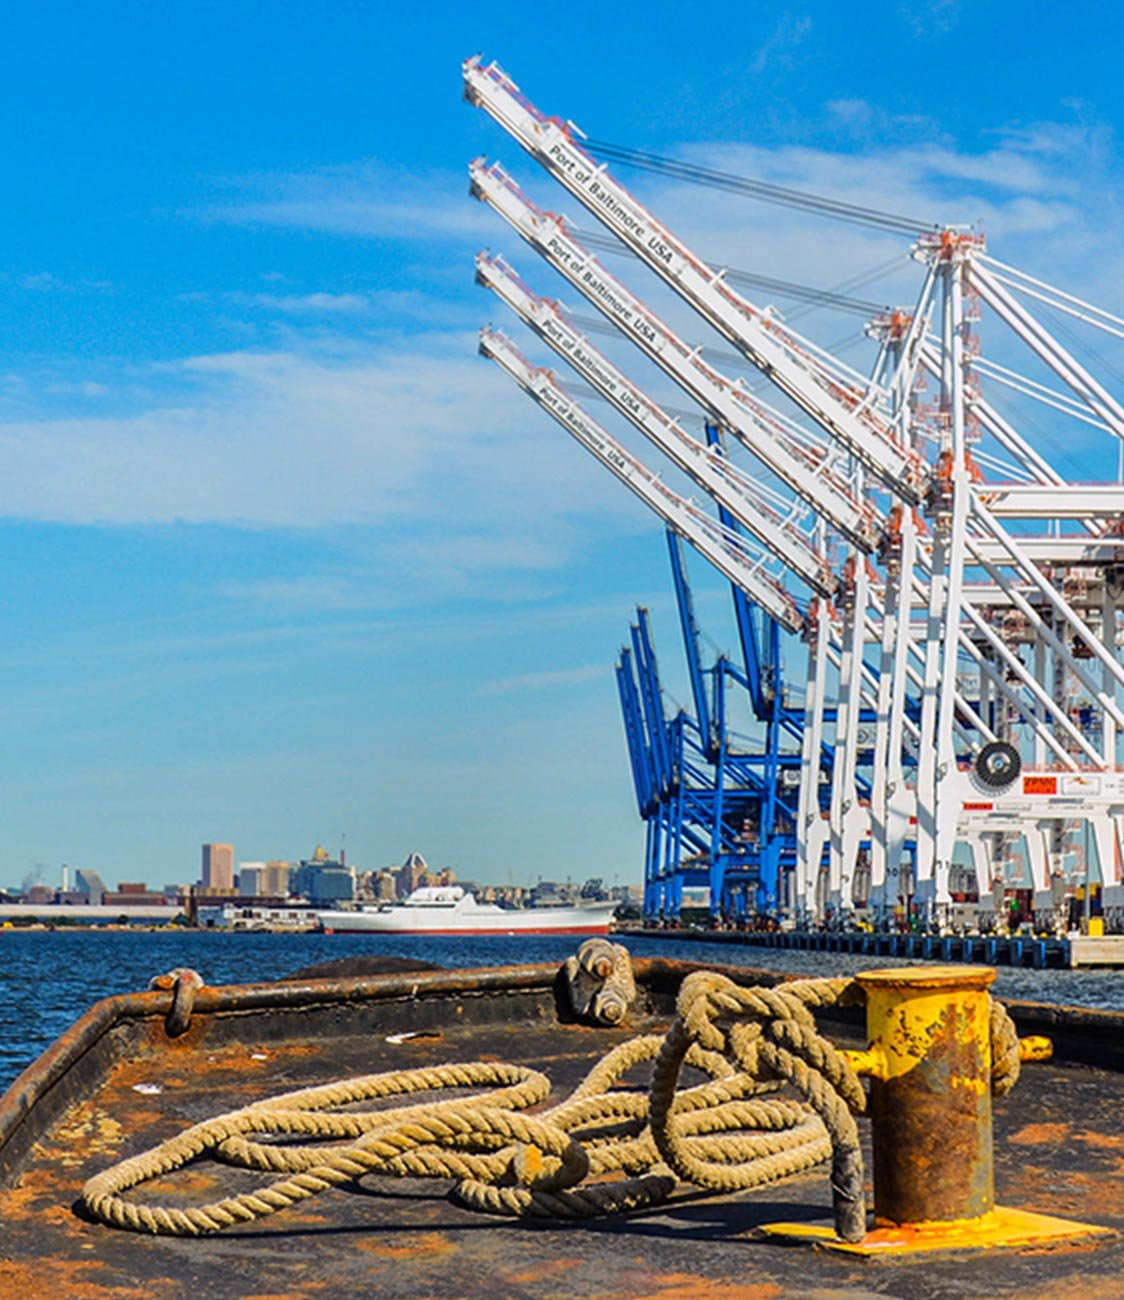 Cranes at Port of Baltimore